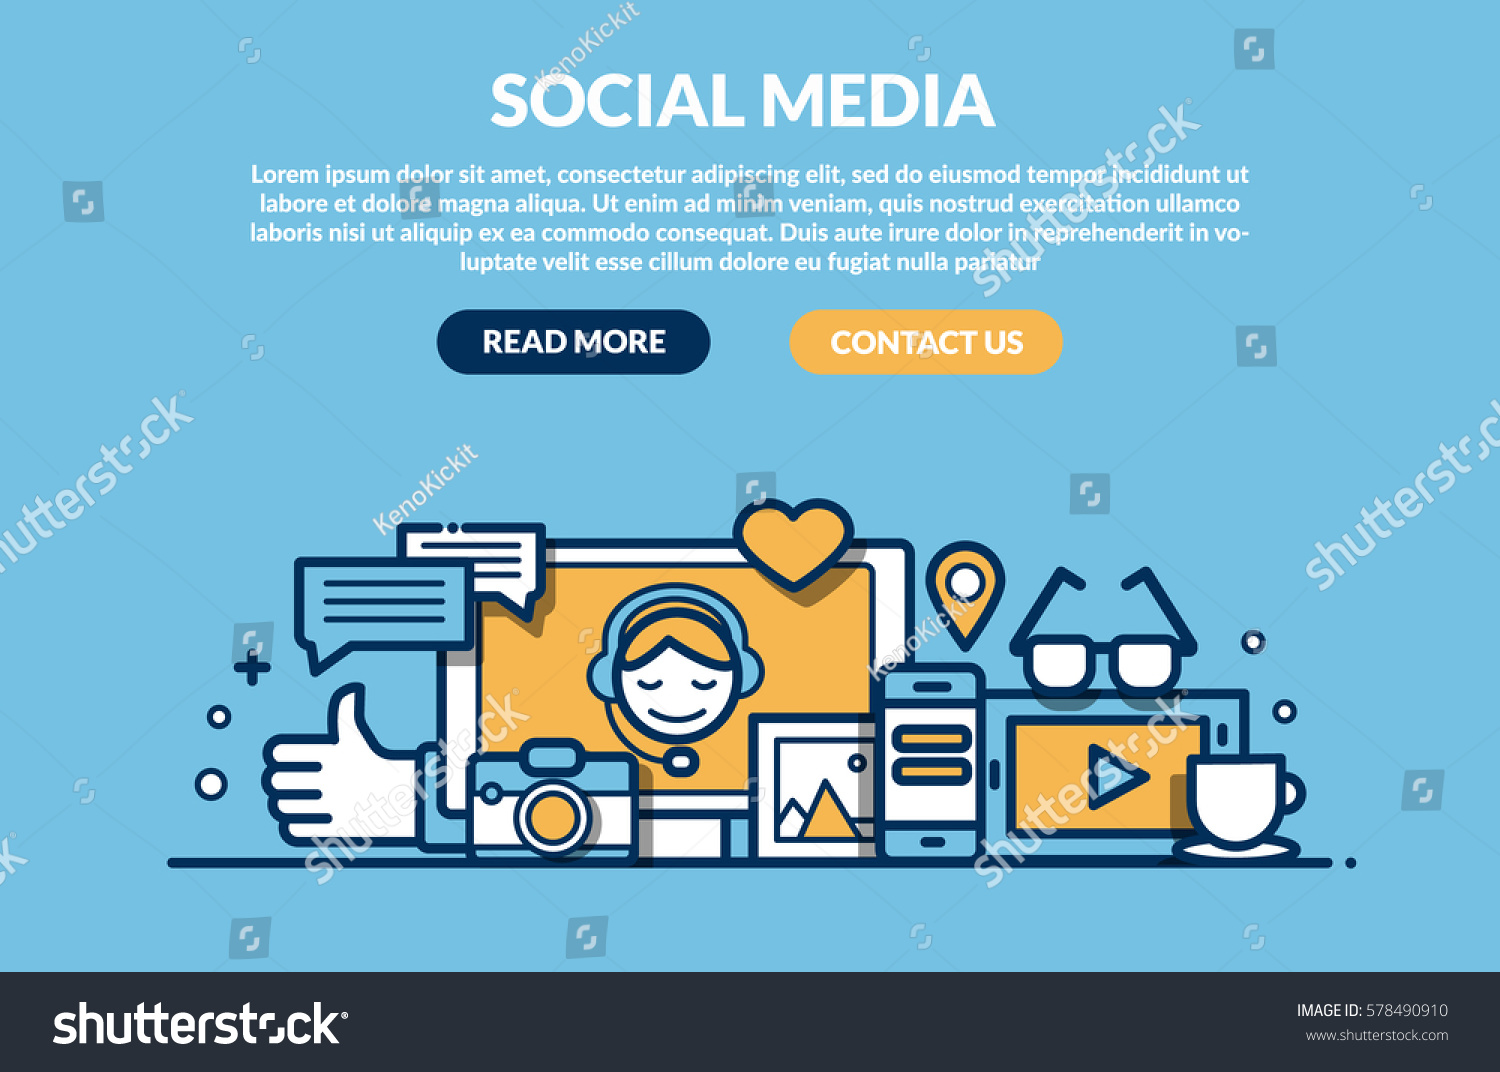 Social Media Concept for web site. Vector illustration #578490910